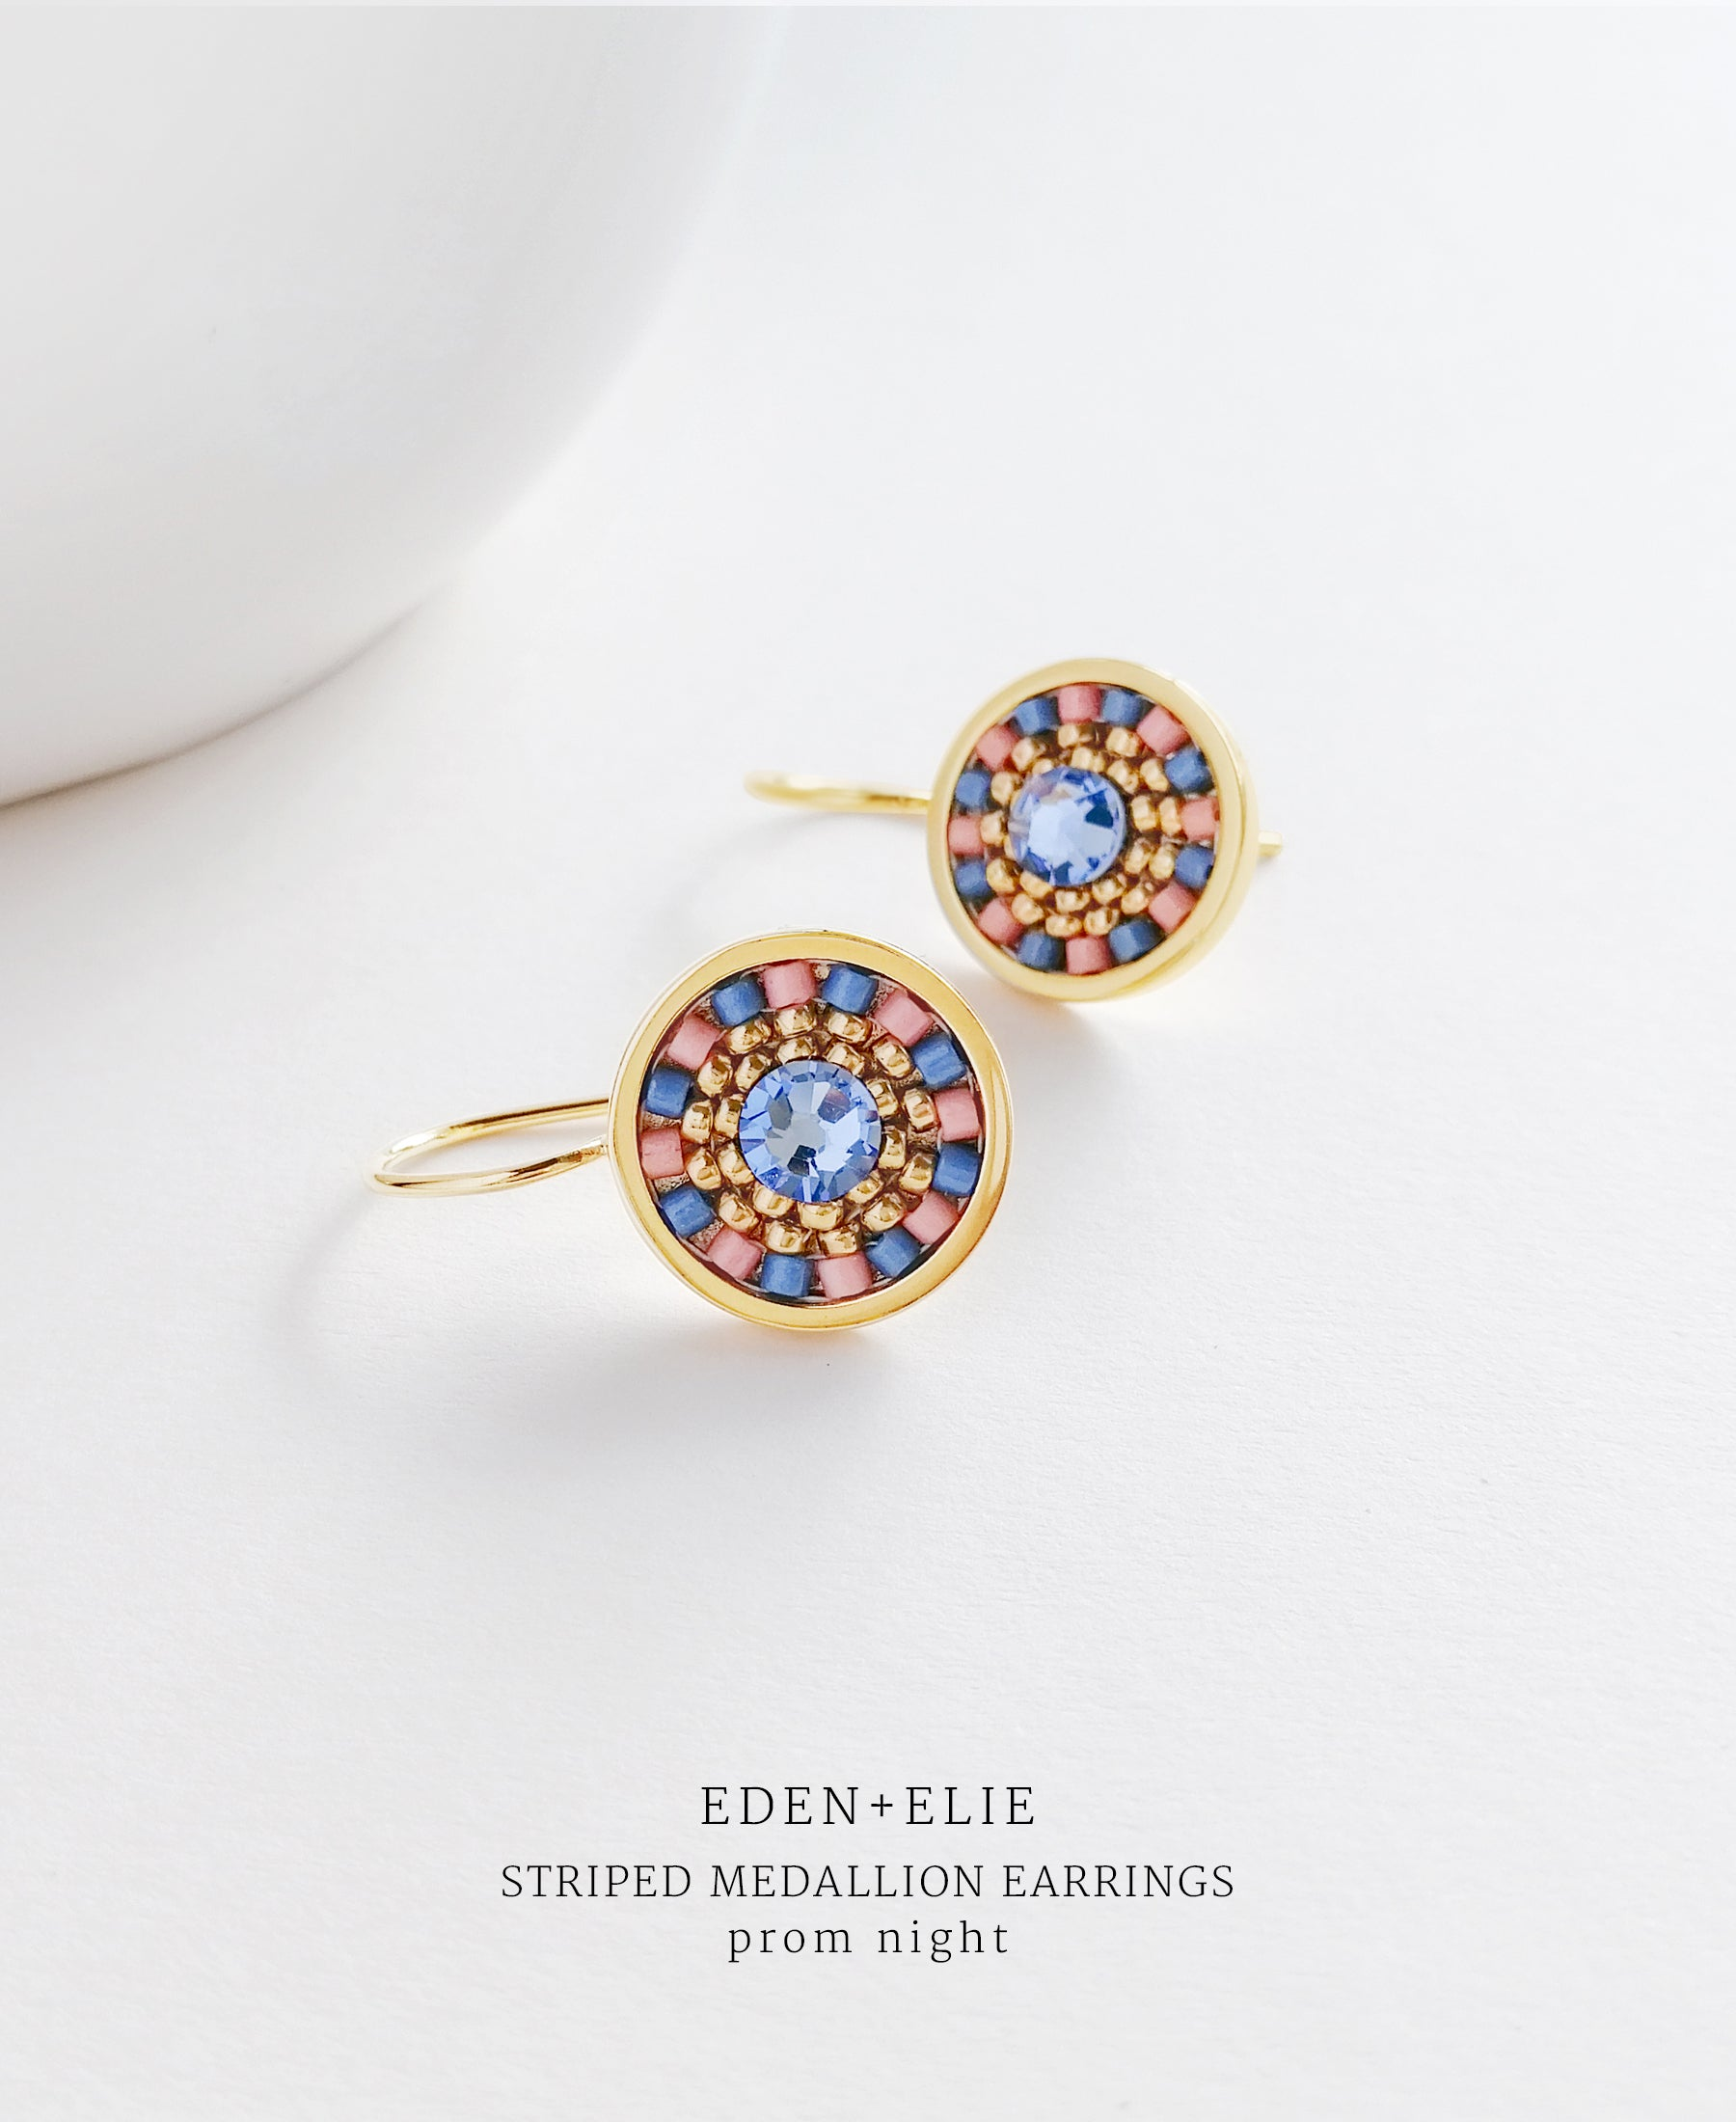 EDEN + ELIE Striped Medallion drop earrings - prom night